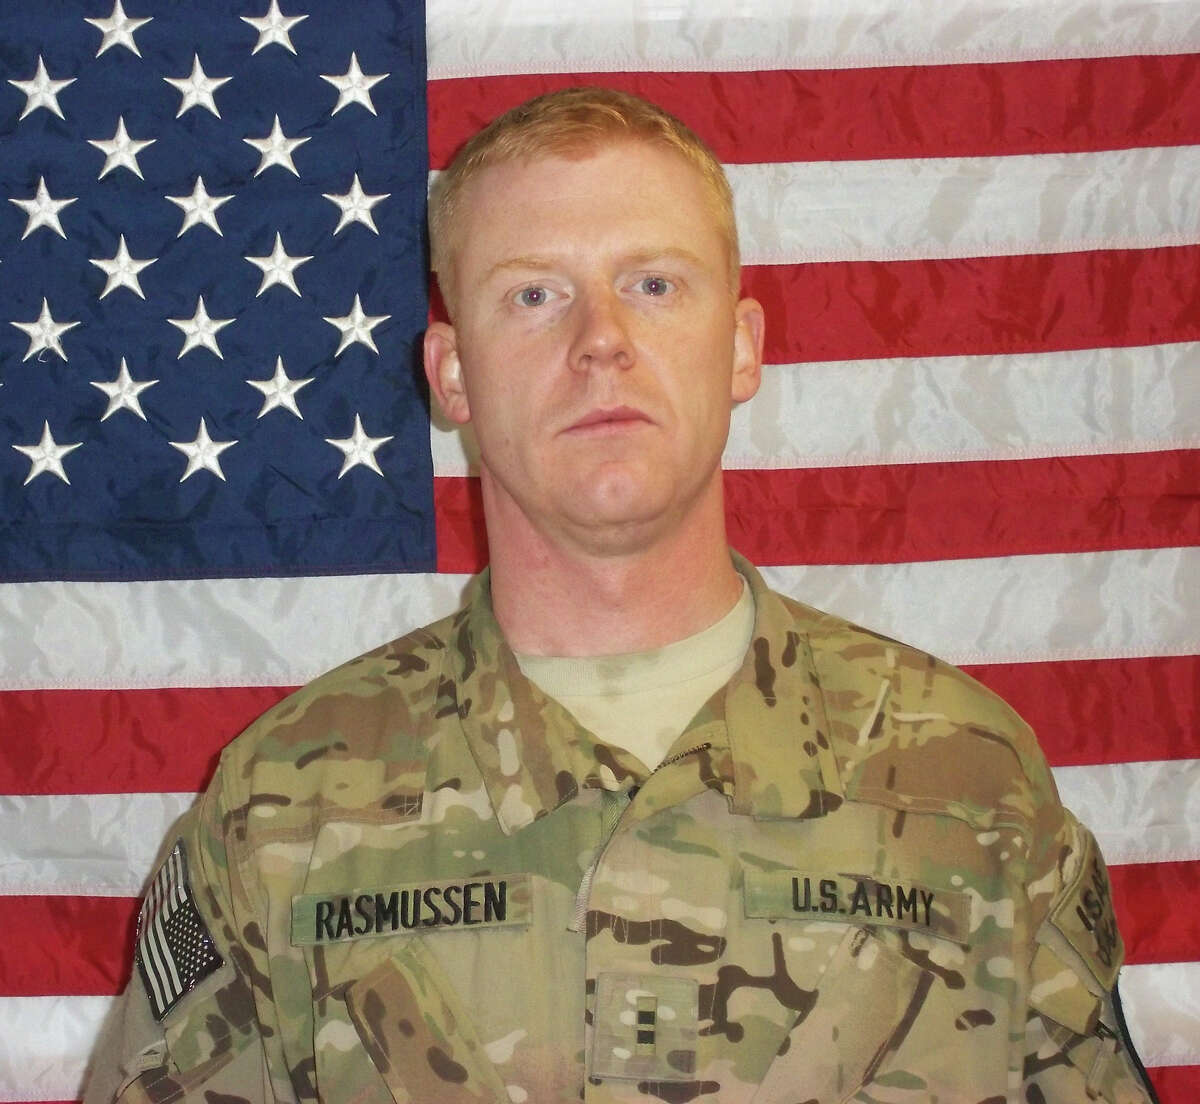 Chief Warrant Officer Deric Michael Rasmussen, 33, whose home of record is listed as Oceanside, California, died May 11 in Mazar E Sharif, Afghanistan, as the result of a noncombat incident. Rasmussen joined the military in January 2003 and was assigned to Company C, 1st Battalion, 227th Aviation Regiment, 1st Air Cavalry Brigade, Fort Hood since January 2013. Rasmussen deployed in support of Operation Iraqi Freedom from March 2007 to September 2007. He deployed in support of Operation Enduring Freedom in January 2014. His awards and decoration include two Joint Service Commendation Medals, Navy Commendation Medal, Joint Service Achievement Medal, two Army Achievement Medals, two Marine Corps Good Conduct Medals, National Defense Service Medal, Afghanistan Campaign Medal with campaign star, Iraqi Campaign Medal with campaign star, Global War on Terrorism Expeditionary Medal, Global War on Terrorism Service Medal, Navy Sea Service Deployment Medal, Army Service Ribbon, Army Aviator Badge.